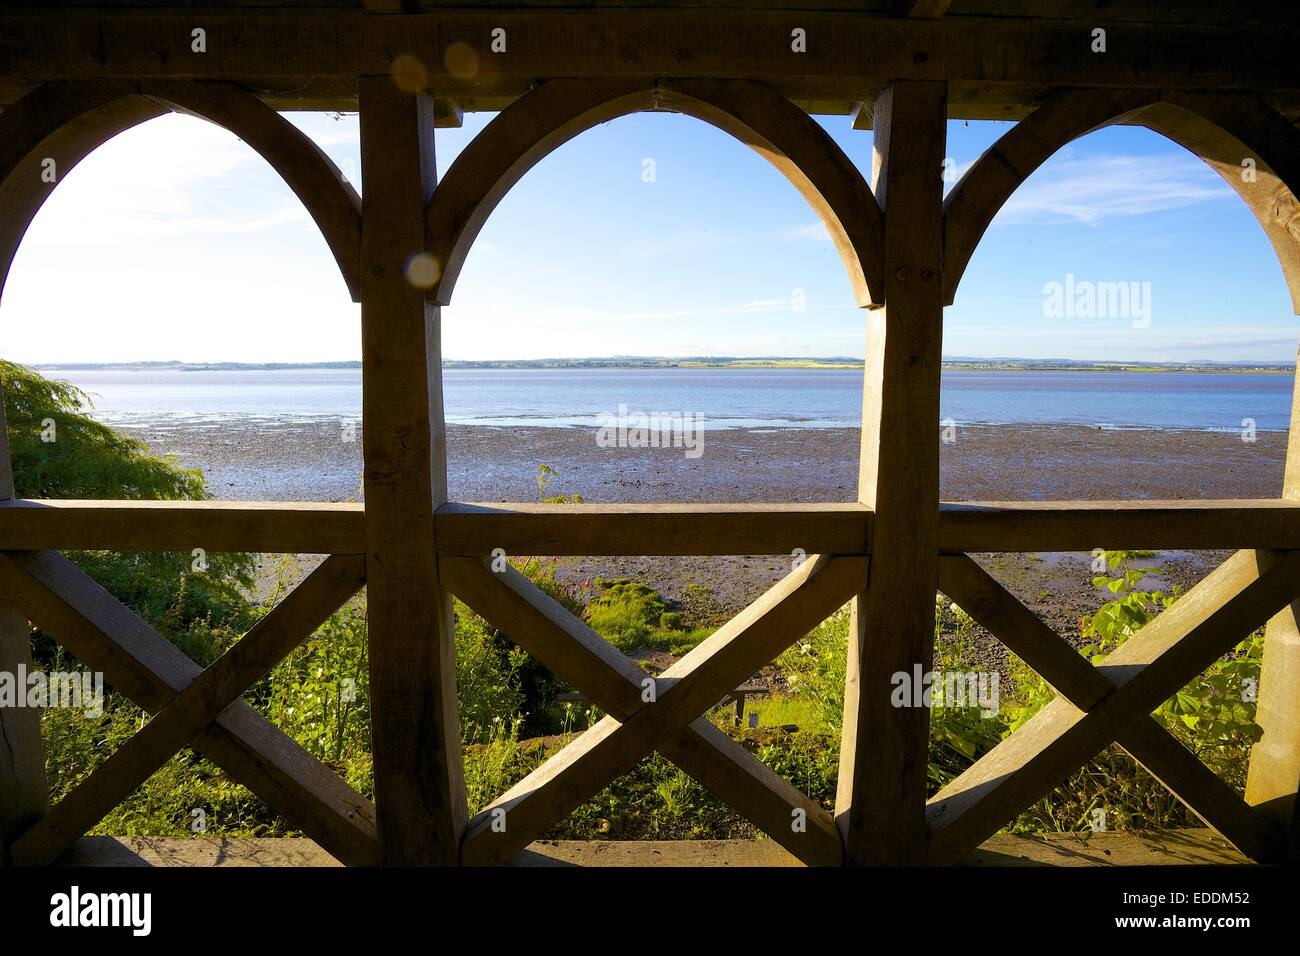 View from Summerhouse at theTerminus of Hadrian's Wall, Bowness-on-Solway Cumbria England UK. - Stock Image